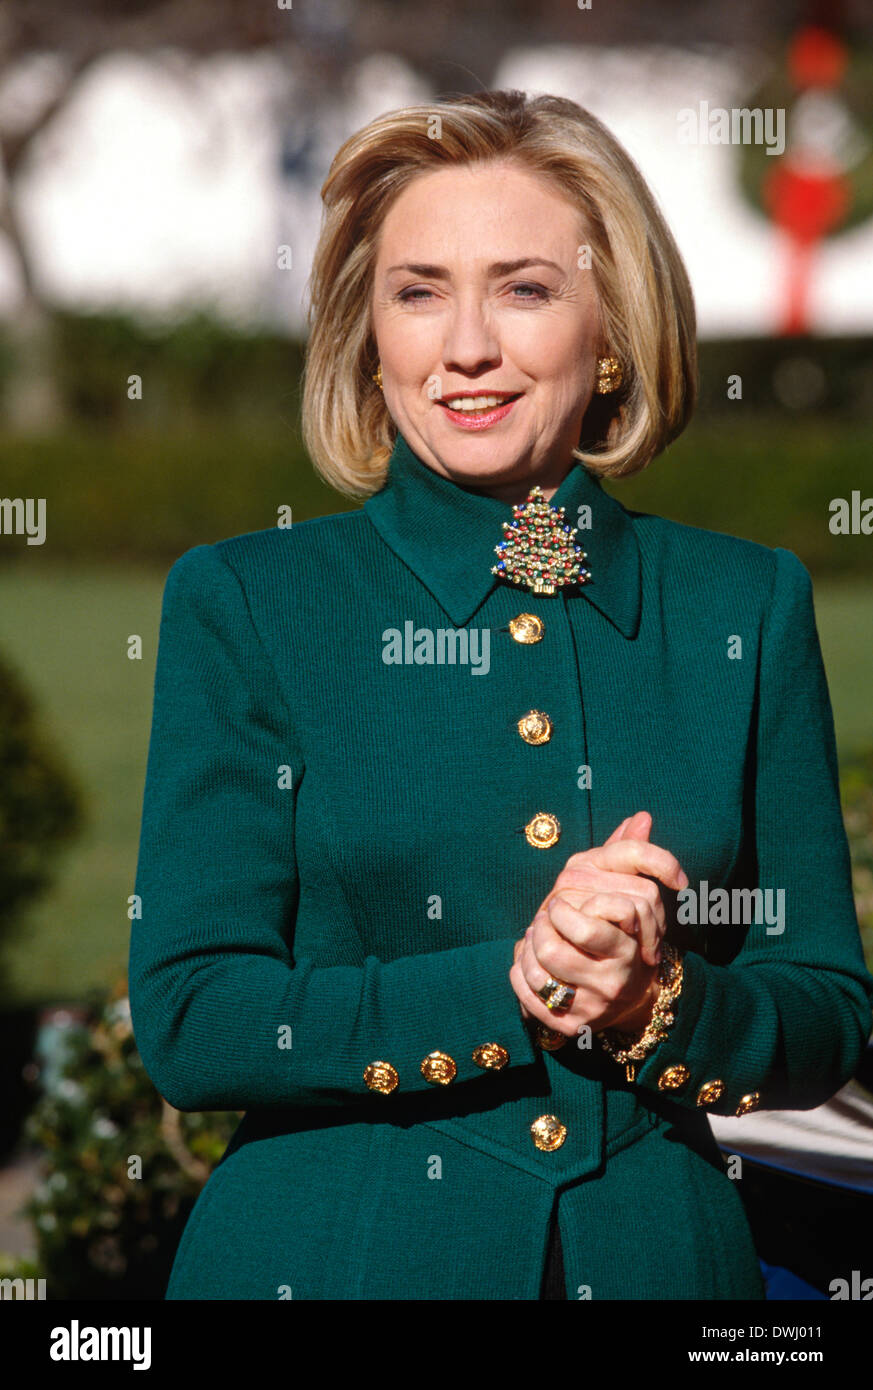 Hillary Clinton Christmas.Us First Lady Hillary Clinton Participates In Madd S Christmas Stock